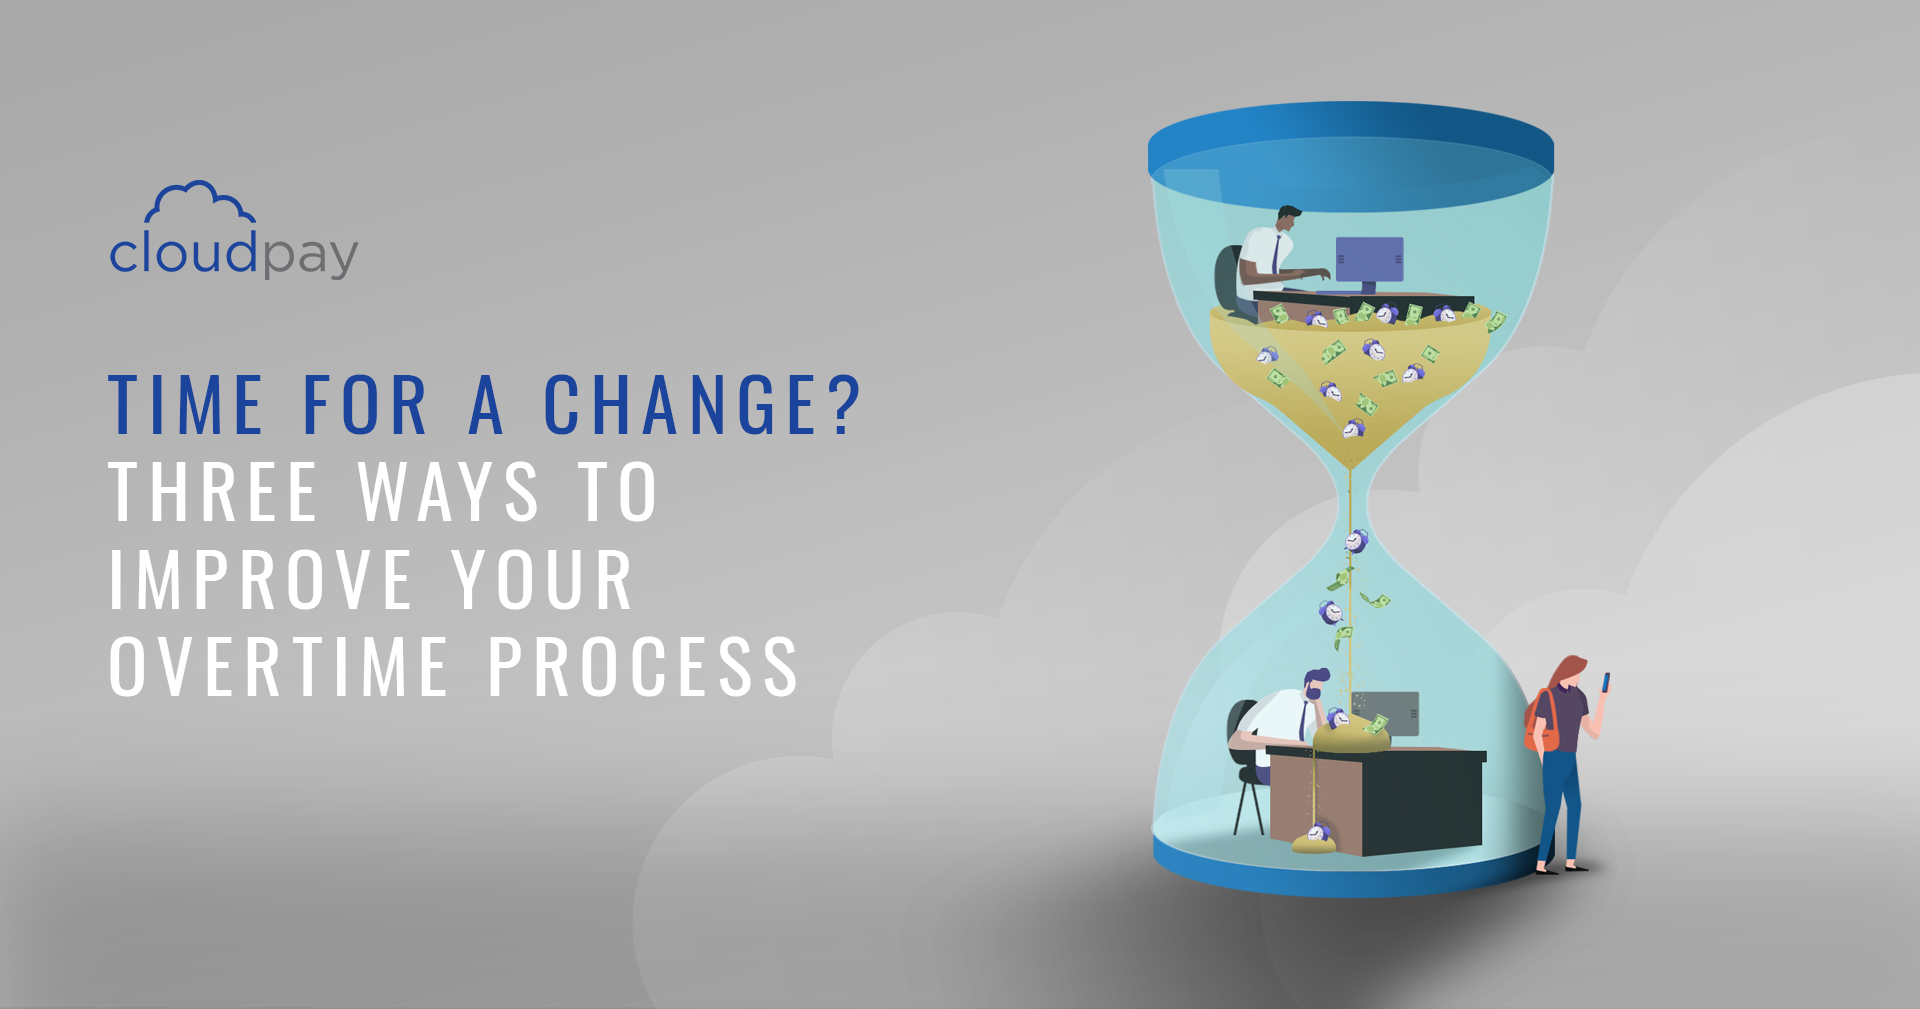 Time for a change? Three ways to improve your overtime process